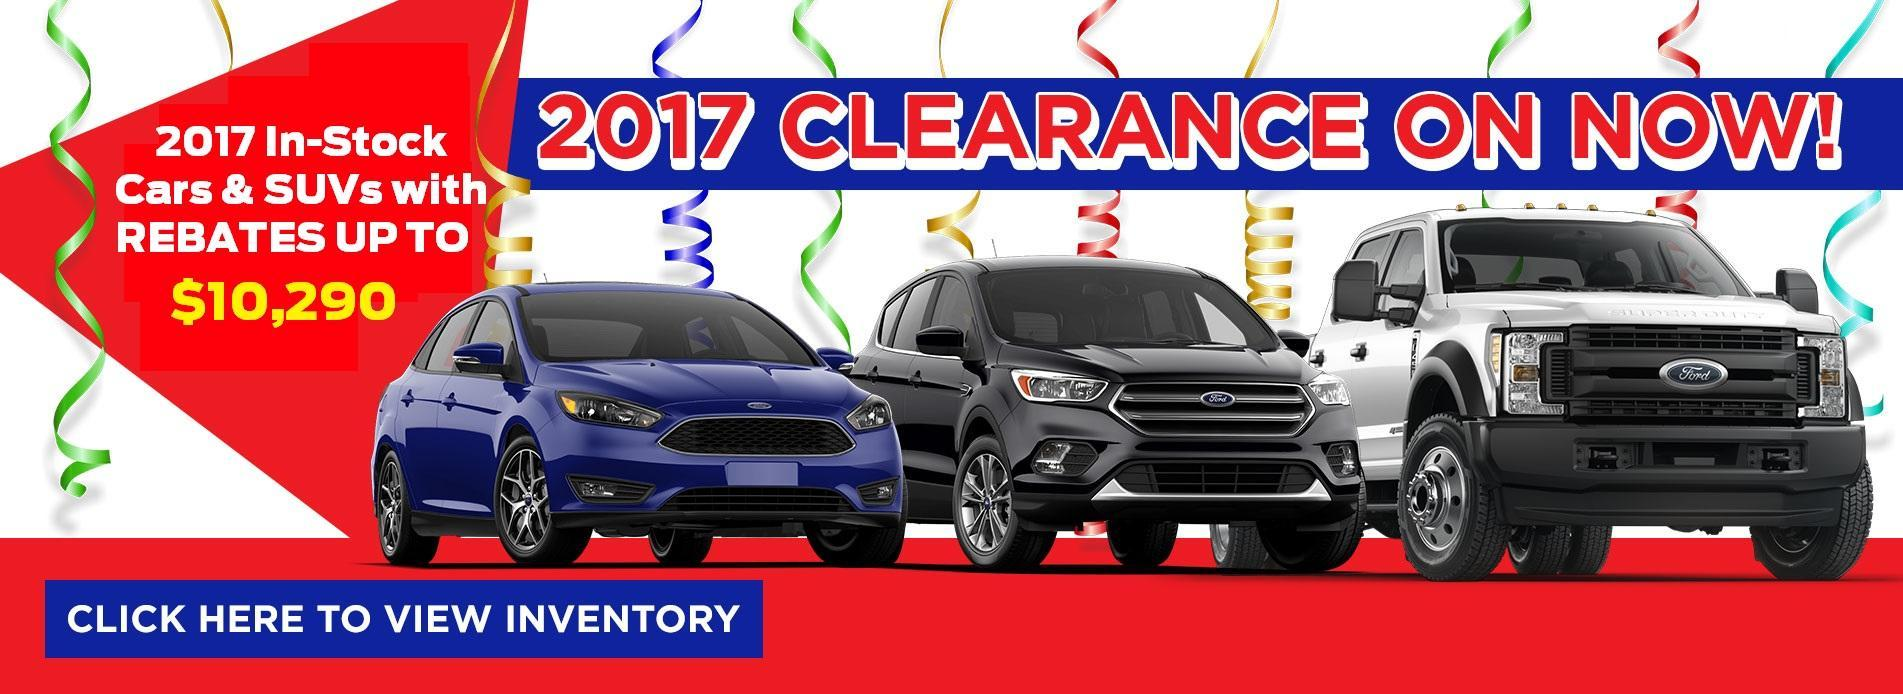 Watkin Motors 2017 Clearance On Now